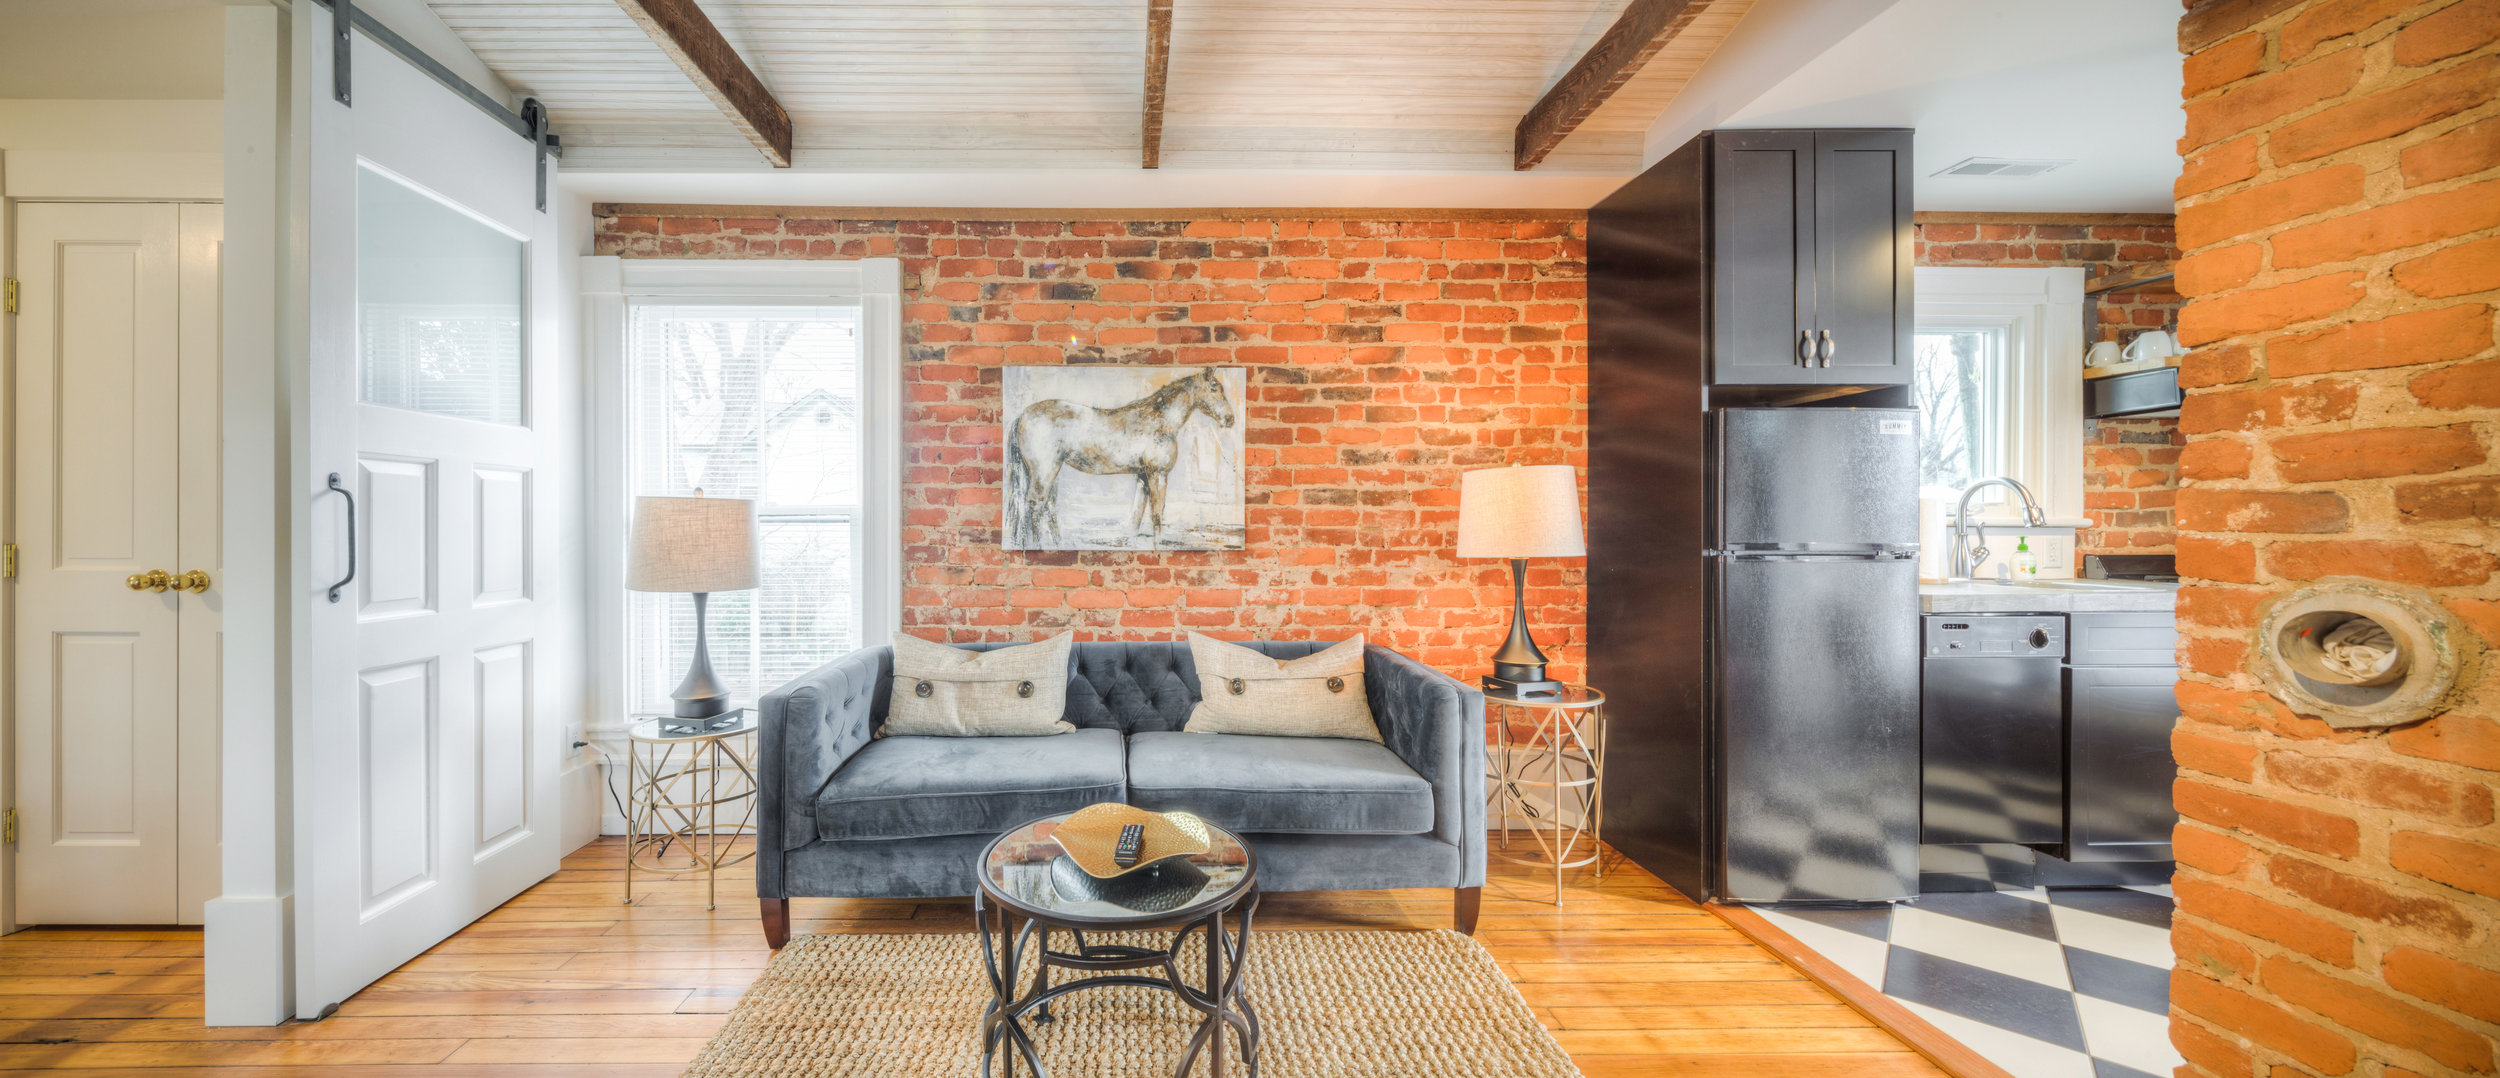 The Elegant | Vacation Rentals | Charlottesville, VA